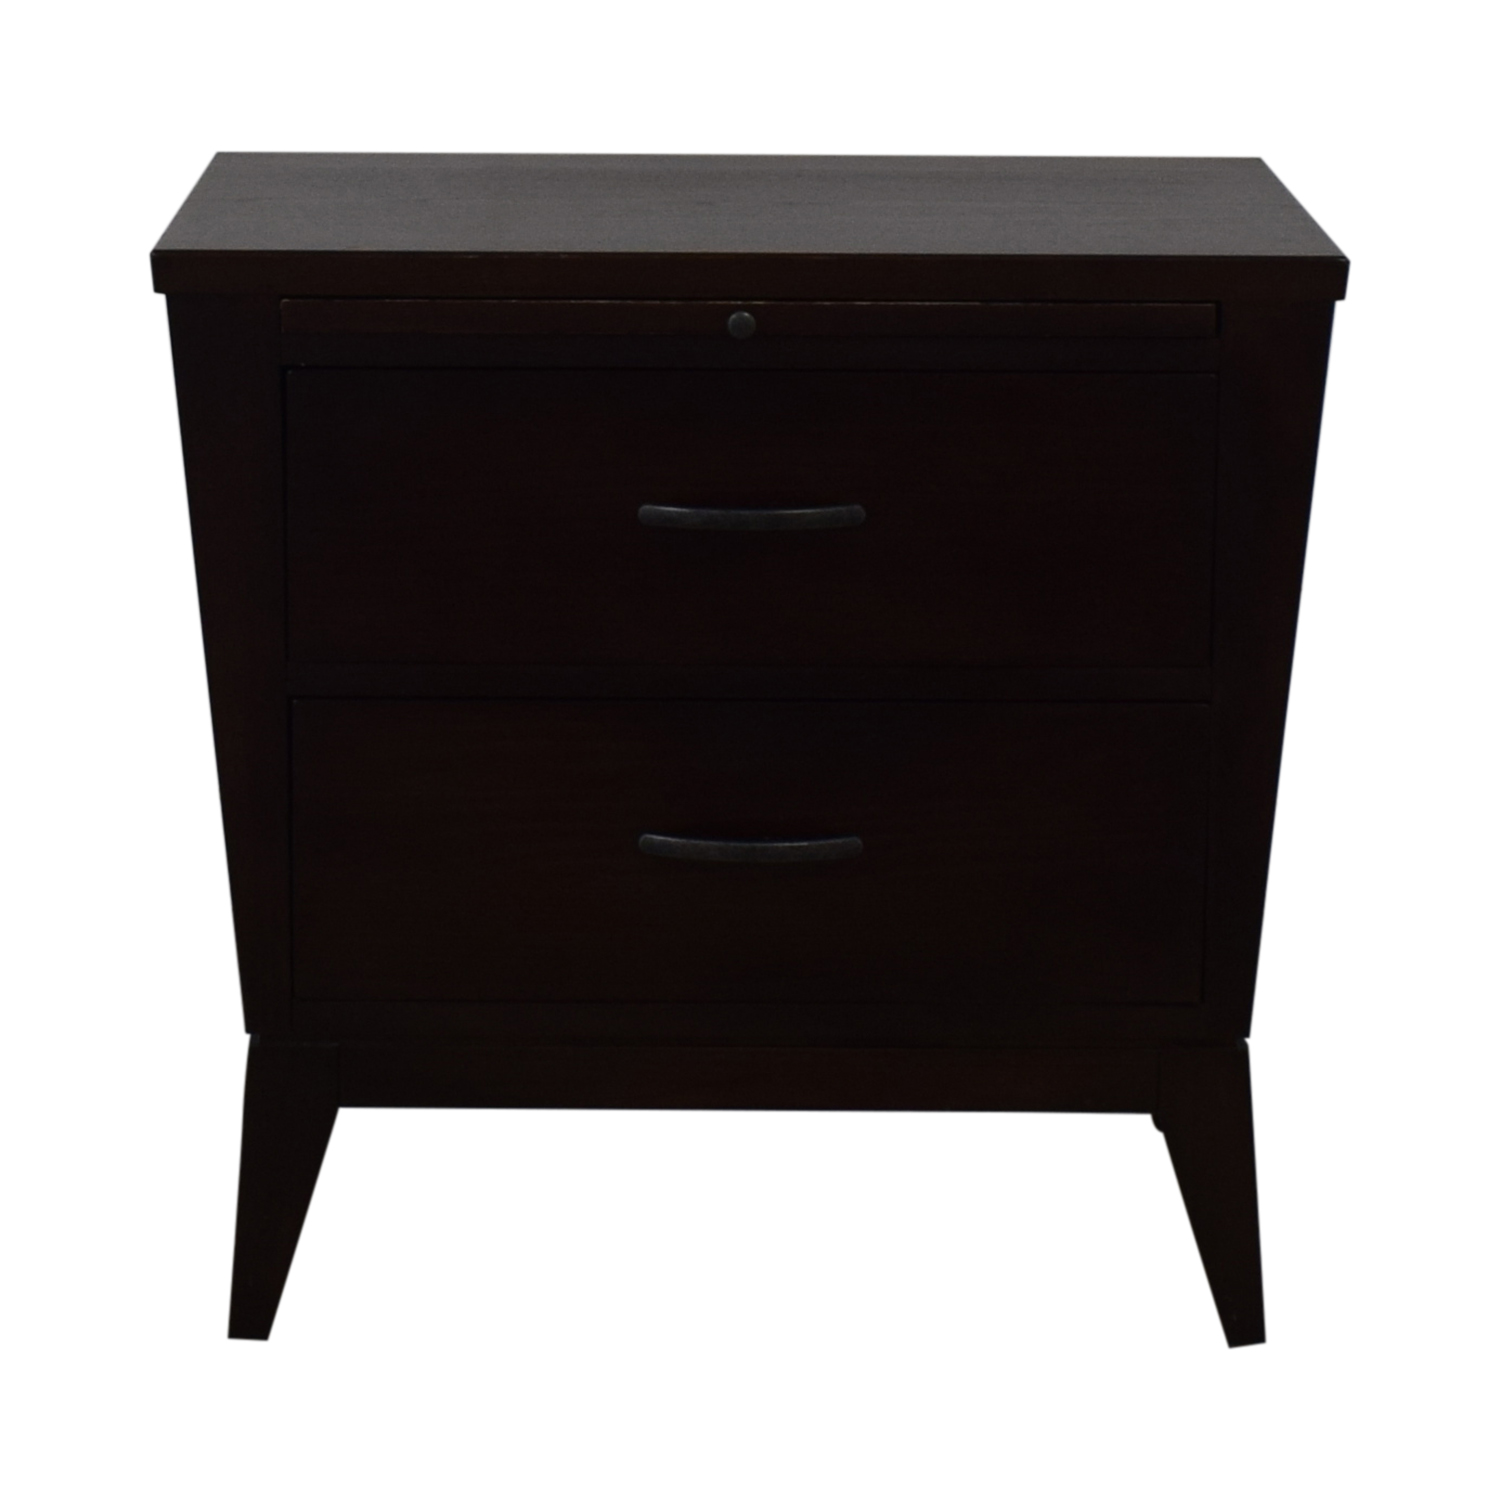 Ethan Allen Nightstand with Drawers / Tables